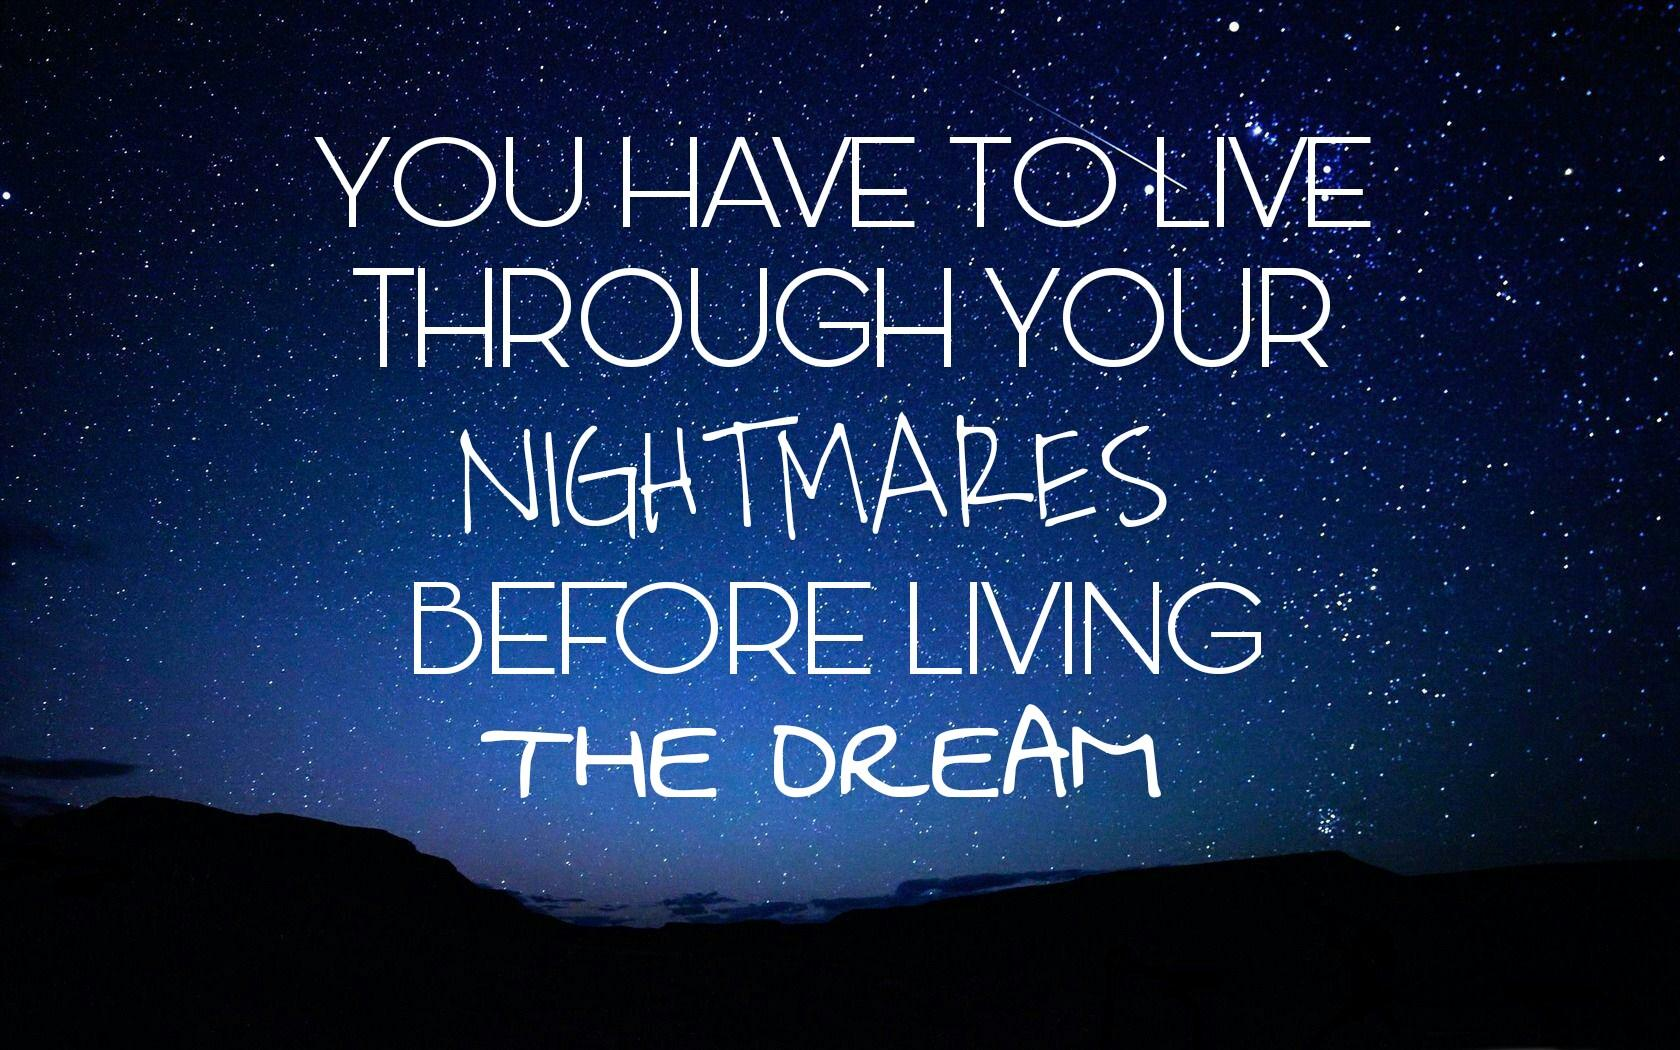 You have to live through your nightmares before living the dream